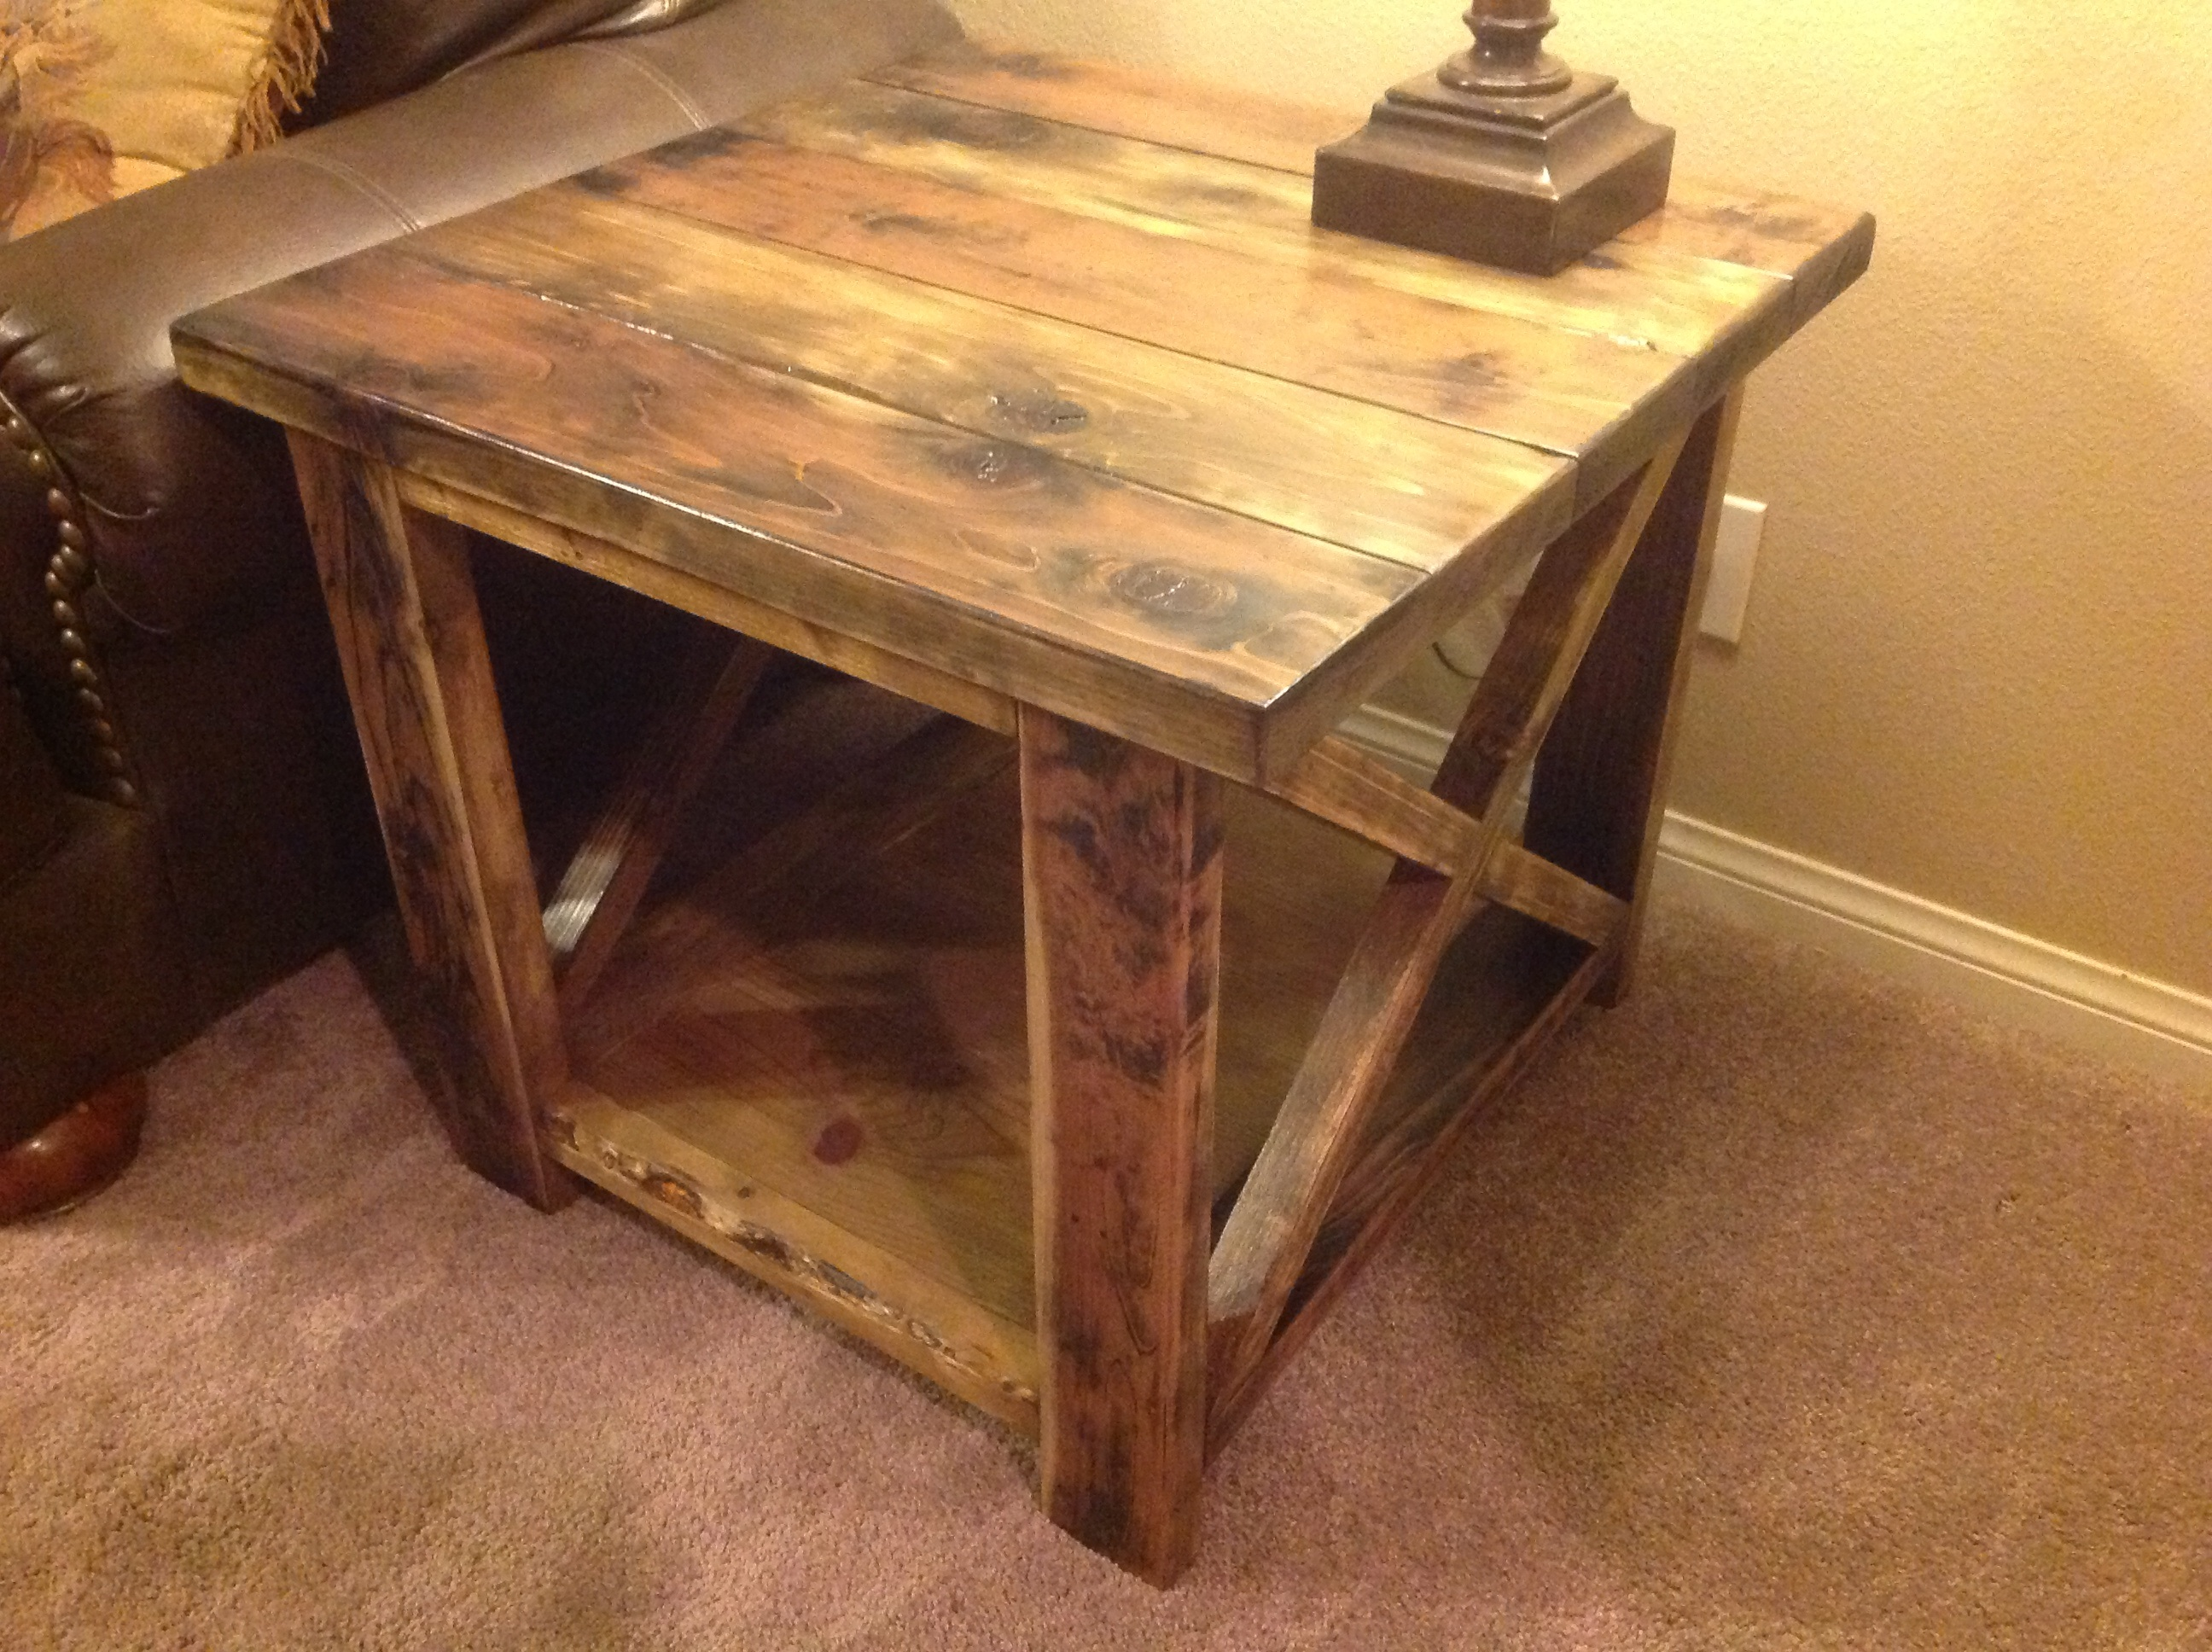 ana white rustic end table diy projects tables nightstand blue base lamps country style coffee cottage traceys bedroom furniture knoxville glass with pillars tall hall gray and